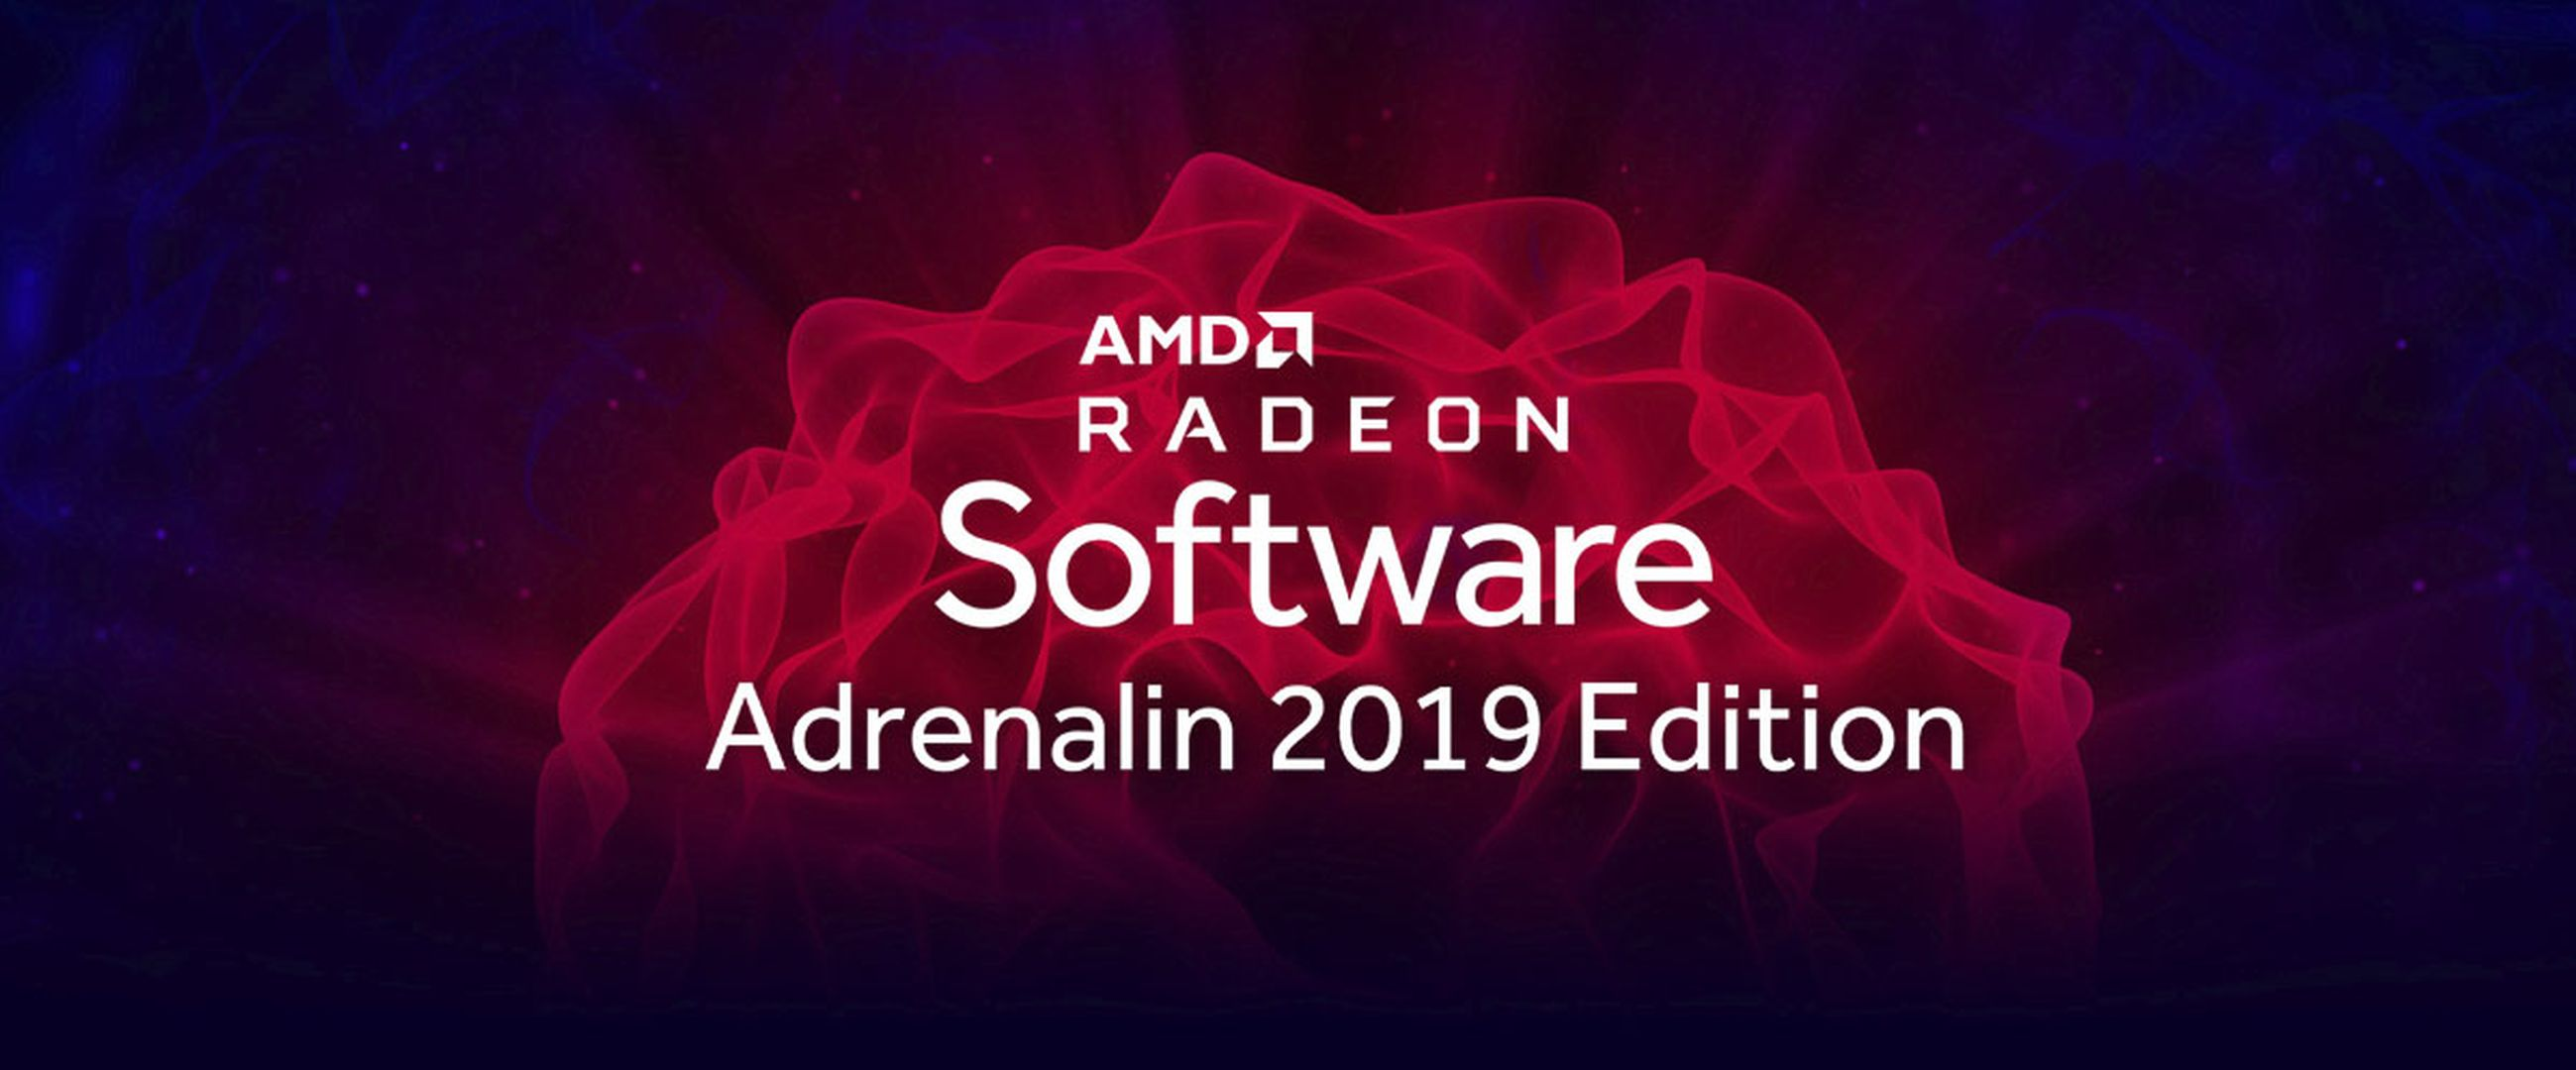 Download AMD's New Radeon Adrenalin 2019 Edition Driver